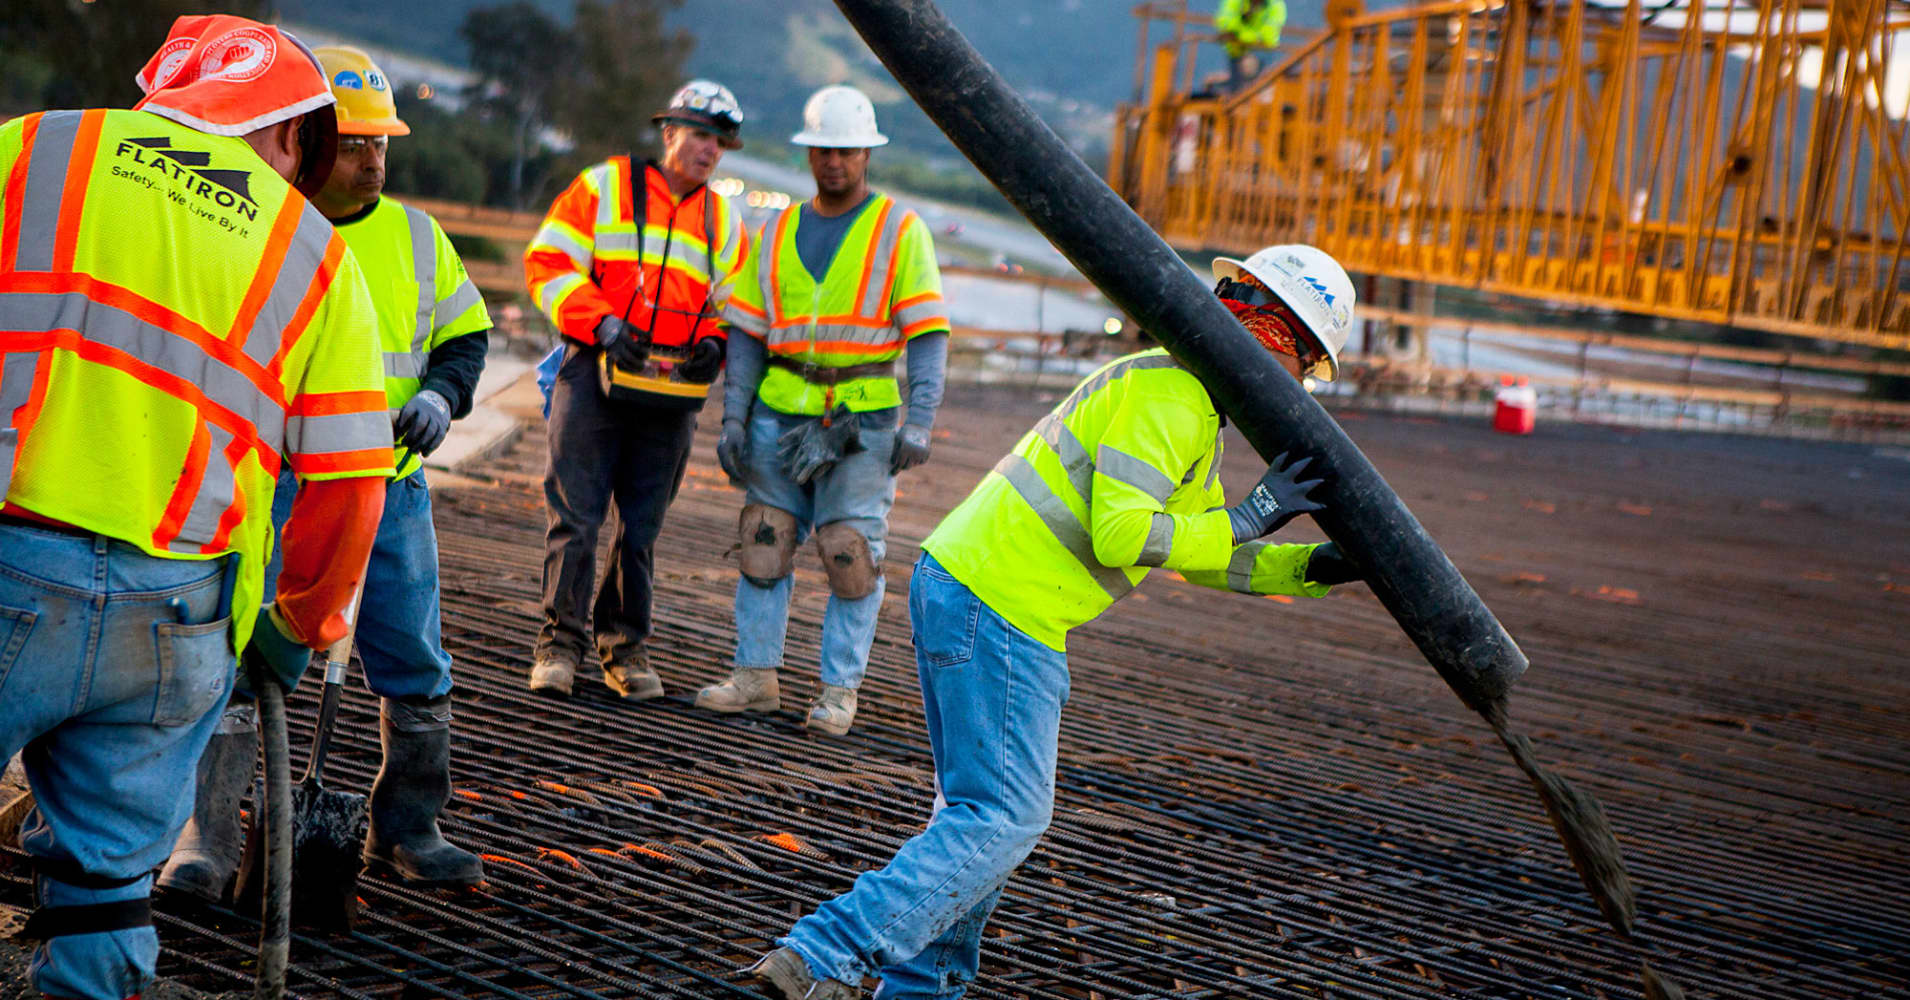 Construction workers pour concrete as part of a bridge expansion project in California.